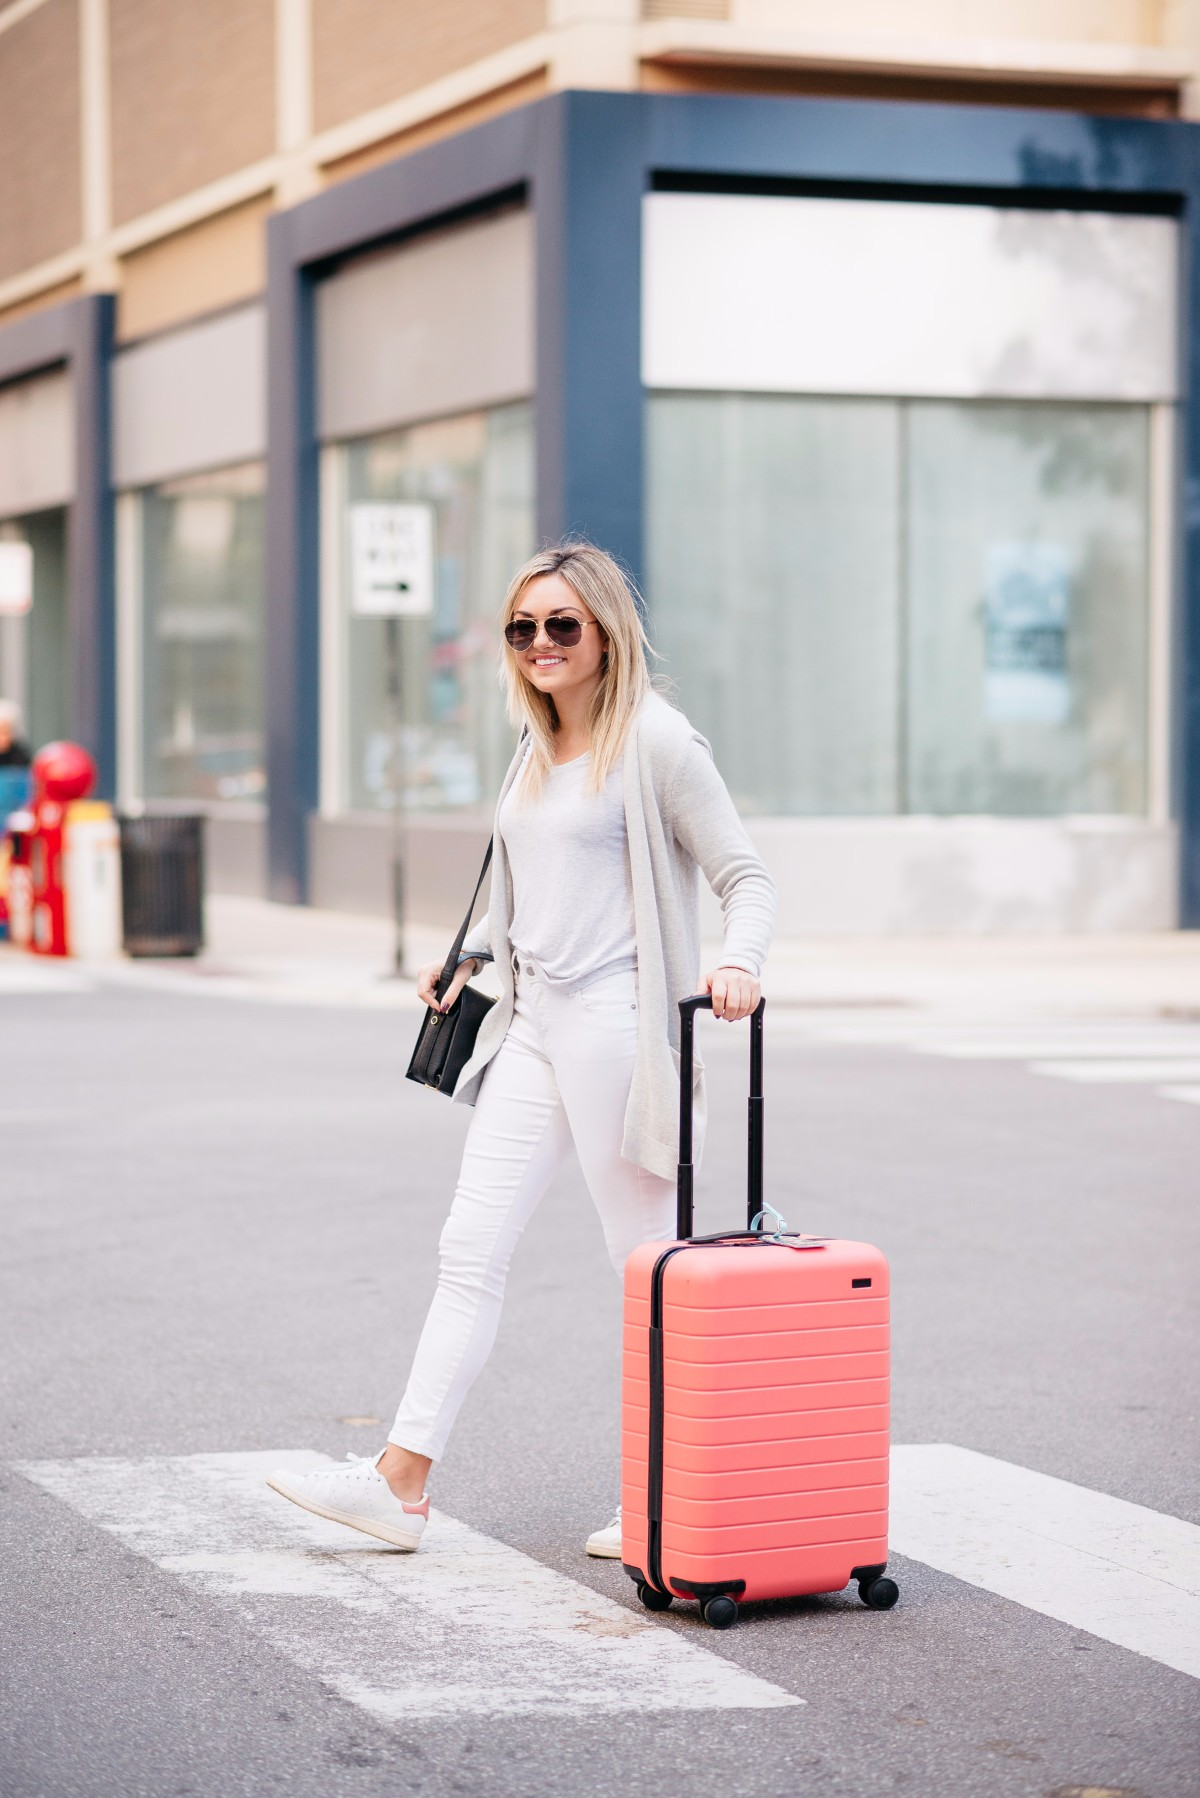 Bows & Sequins wearing an all white outfit with a pink hard shell carry on suitcase.